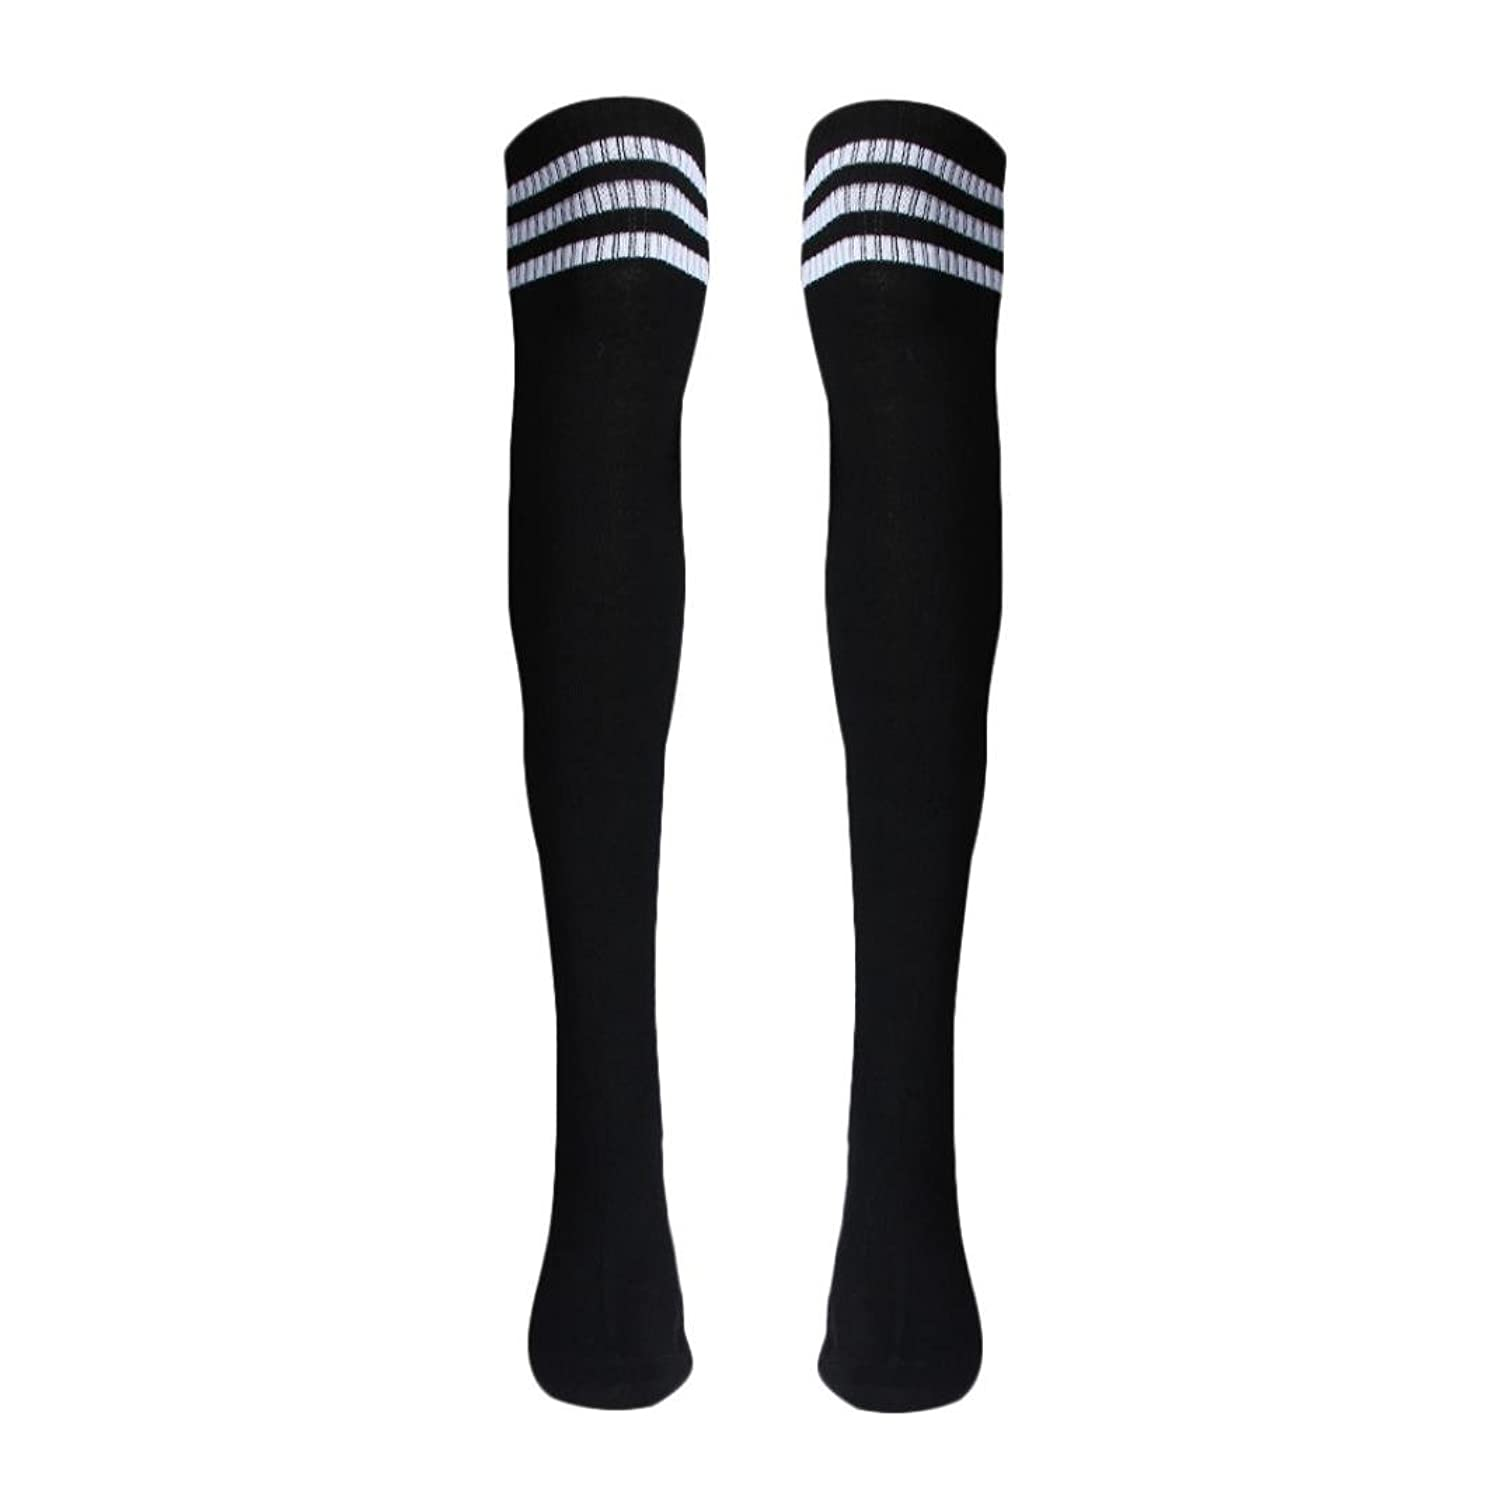 Inkach(TM)1 Pair Thigh High Socks Over Knee Girls Football Socks Black